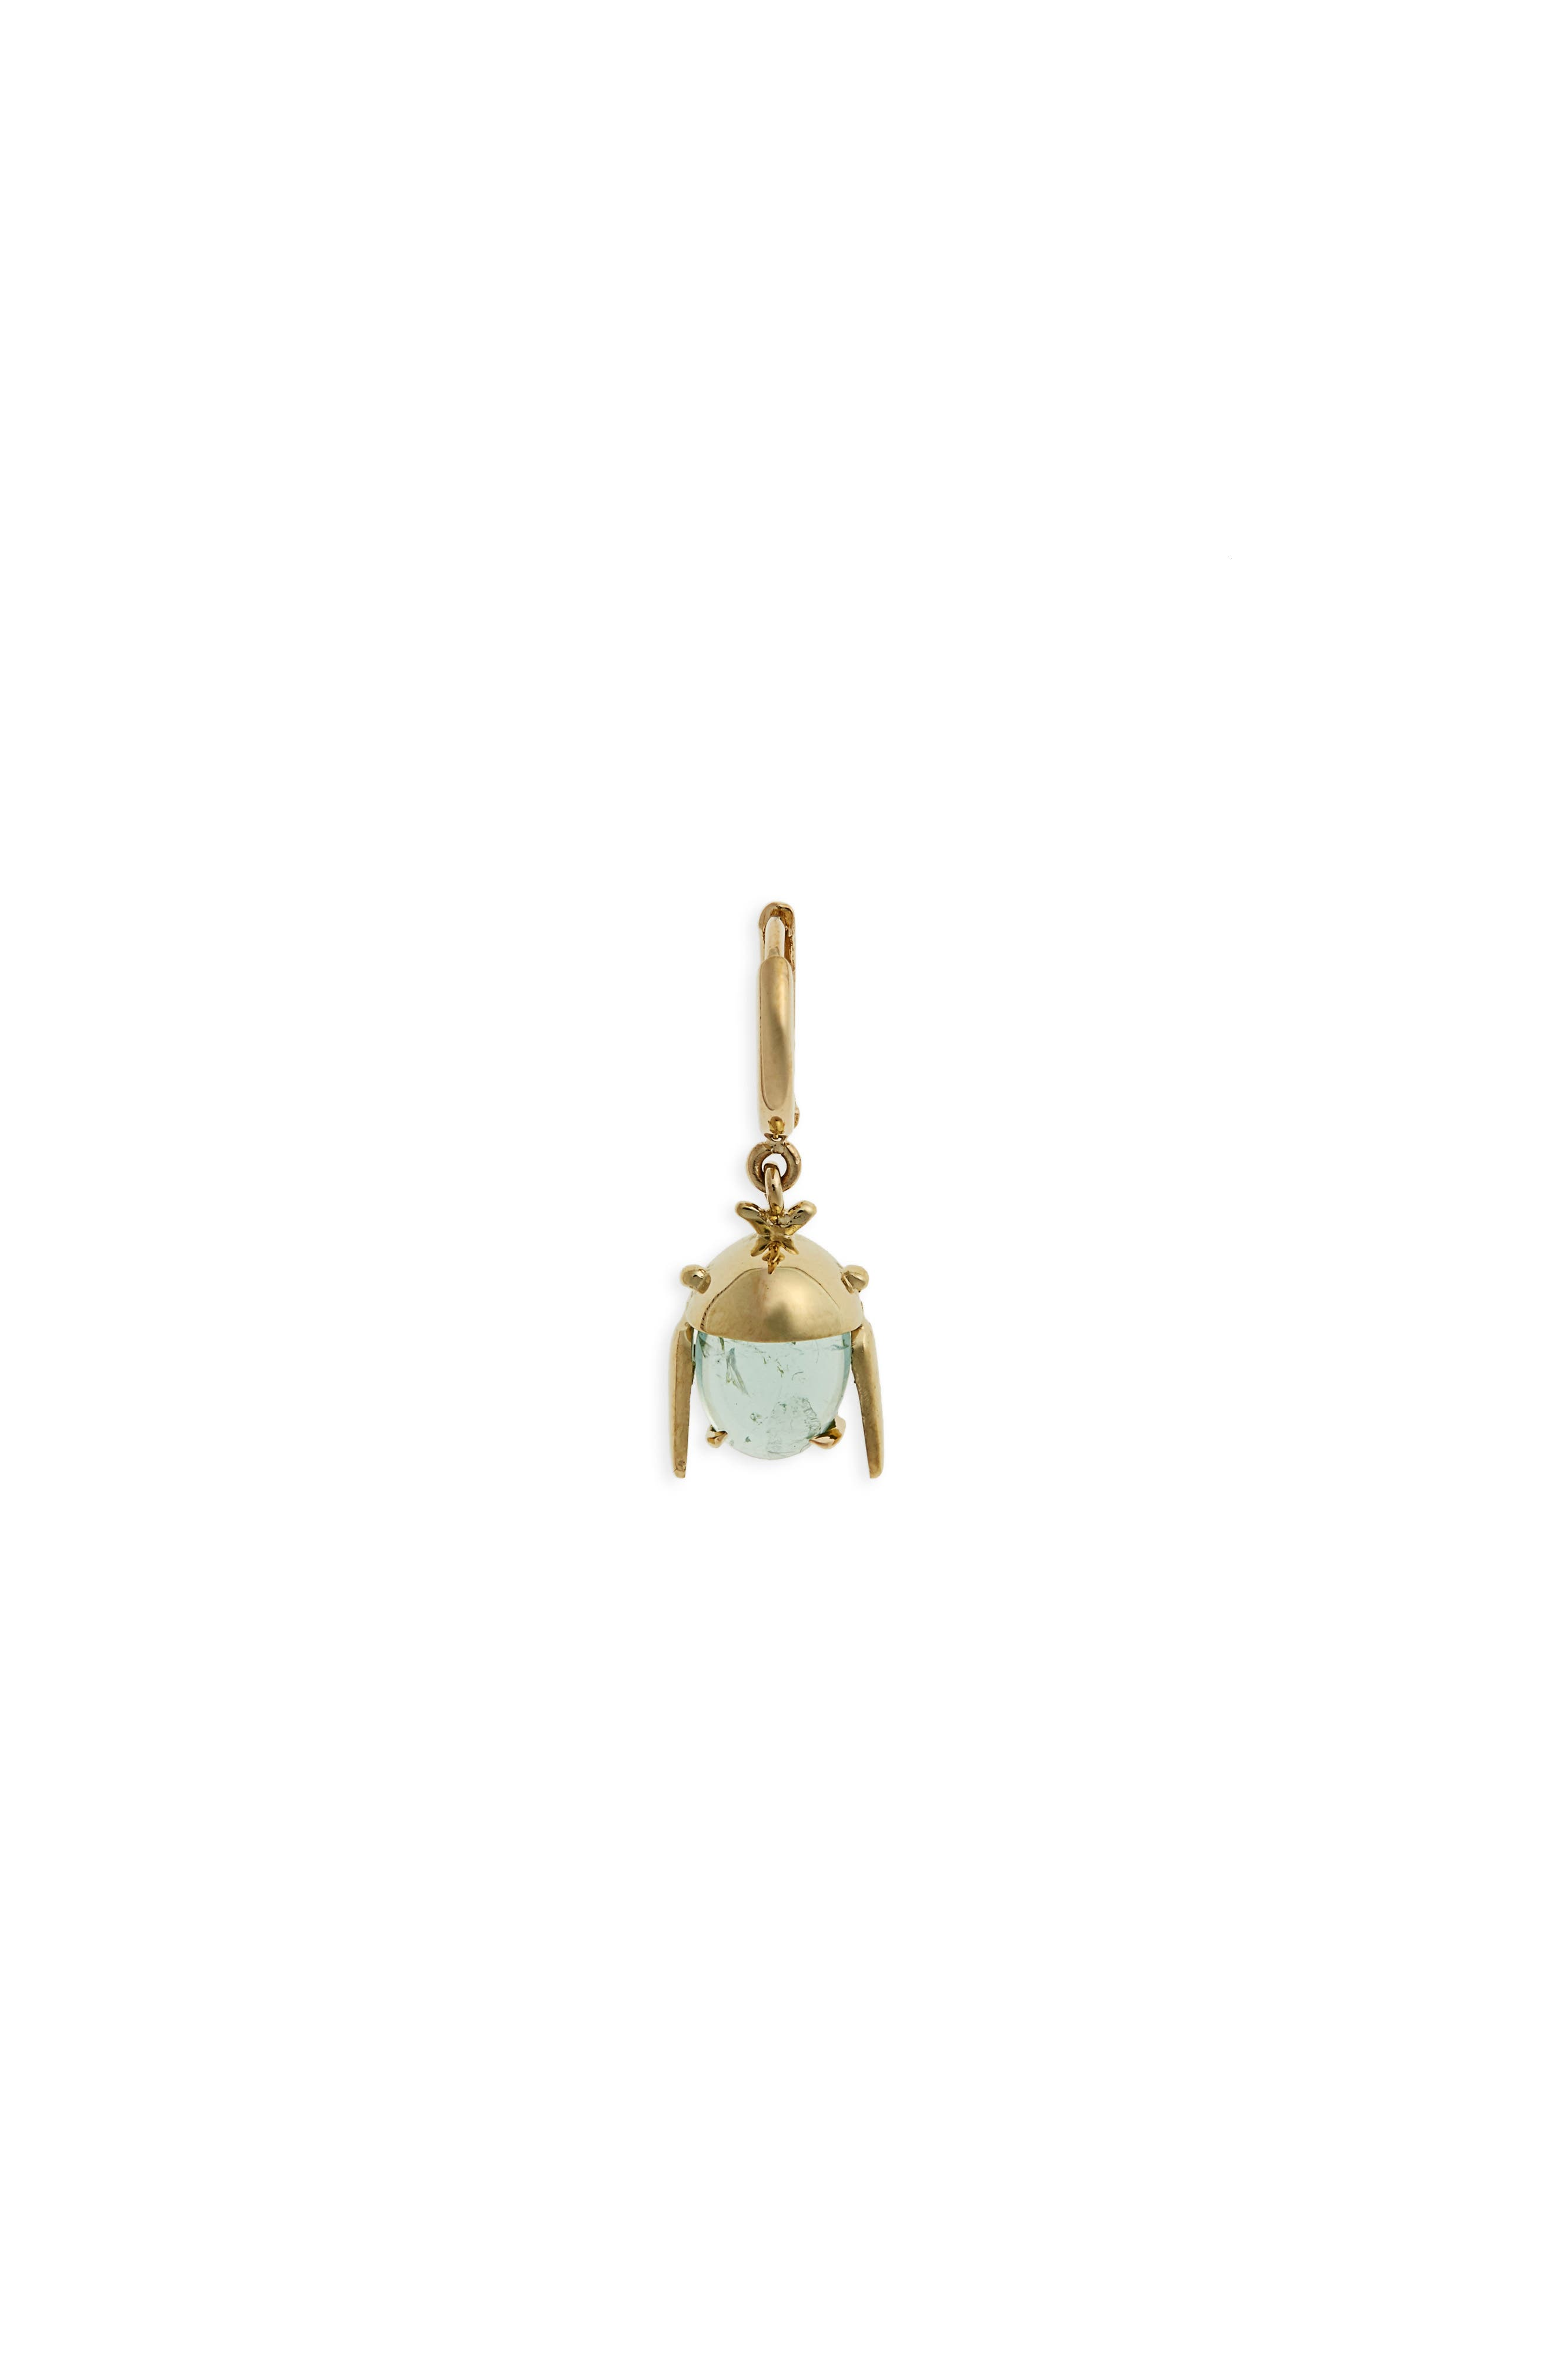 Chiquitin Volador Tourmaline Hoop Earring,                         Main,                         color, Mint/ Yellow Gold